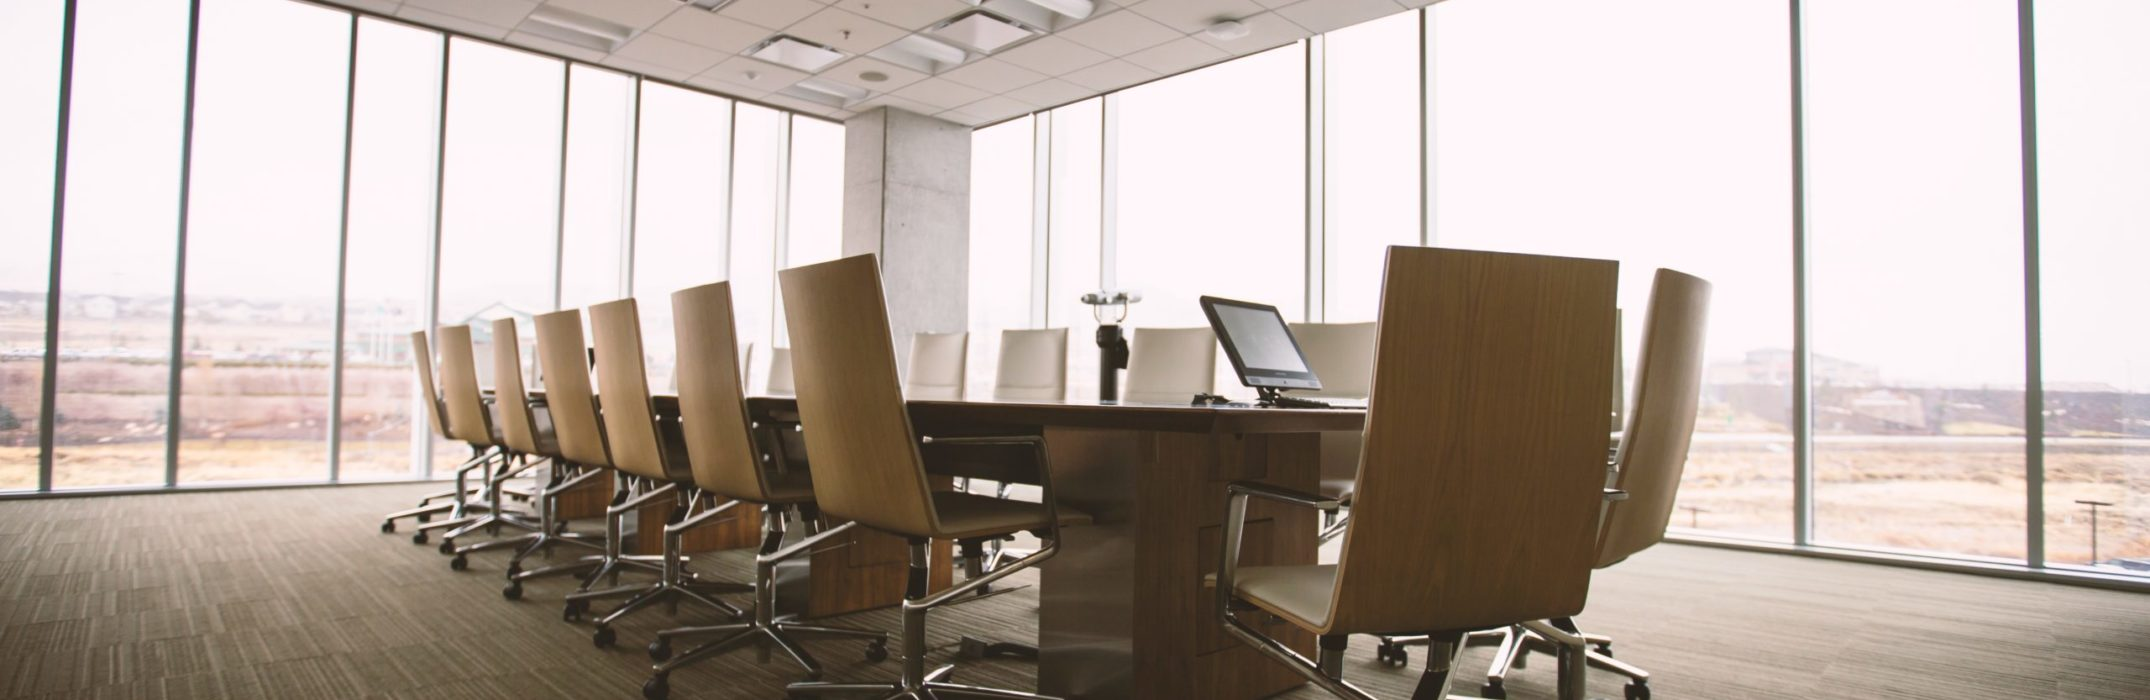 conference-room-768441